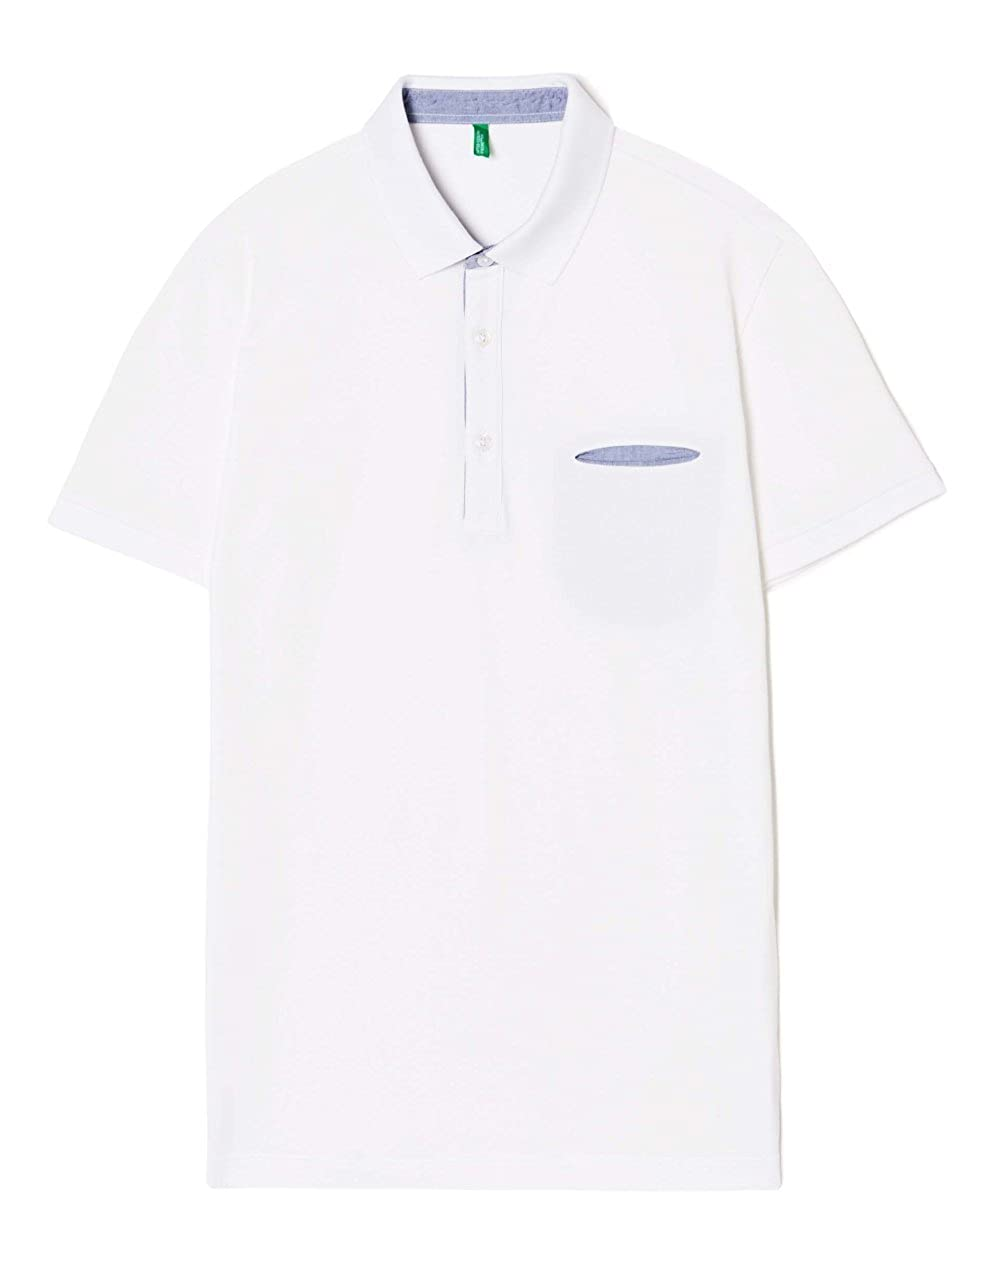 United Colors of Benetton H/s Polo Shirt 3aonj3055, Hombre, Blanco ...